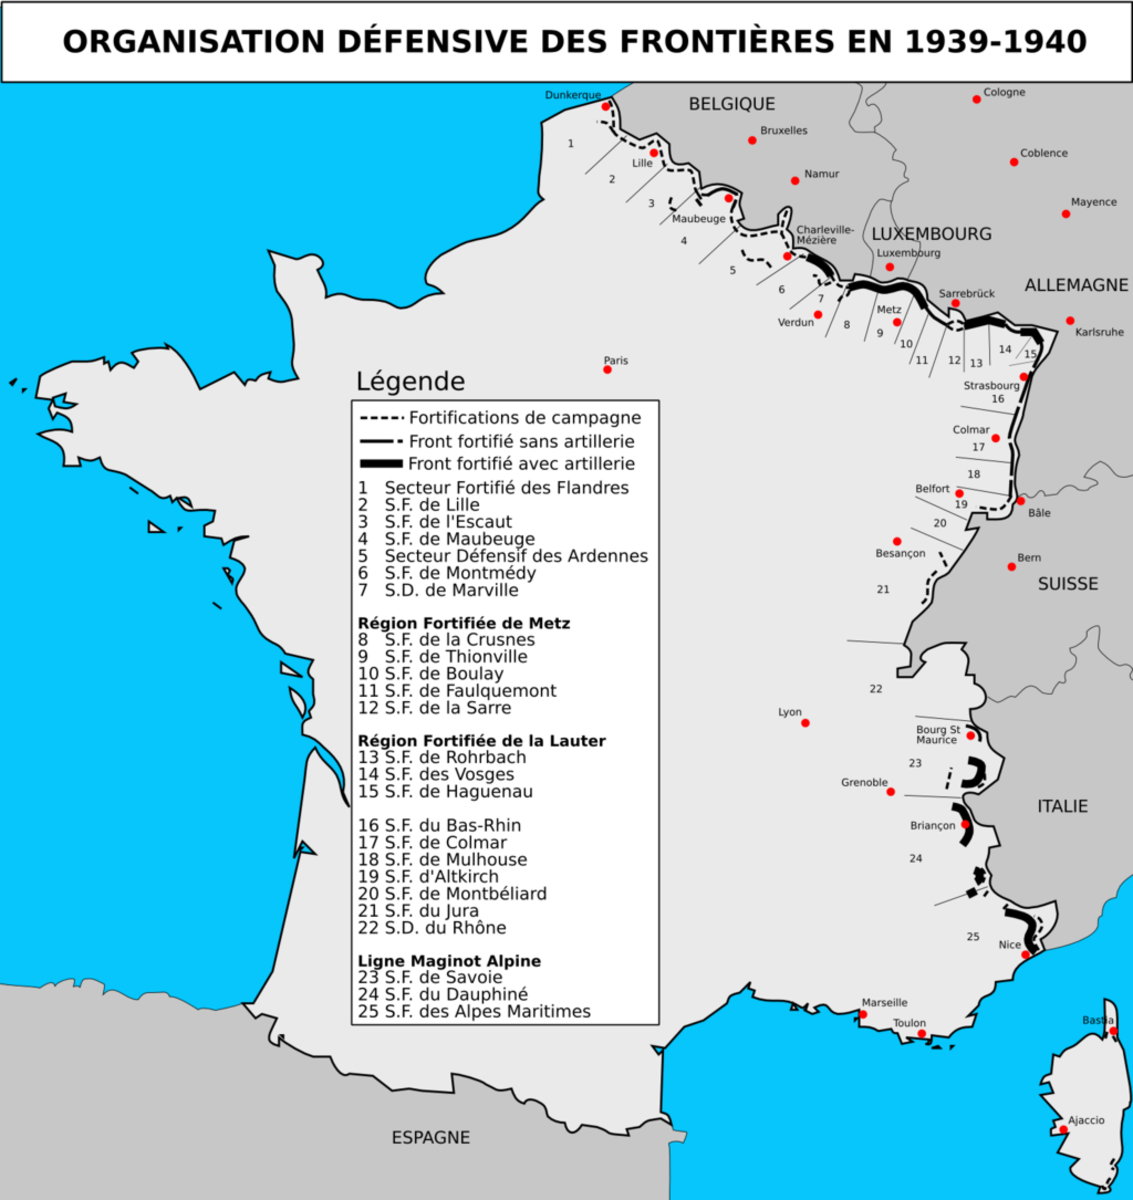 A map of the defensive positions of the French defensive system, strongest along the German and Italian borders.